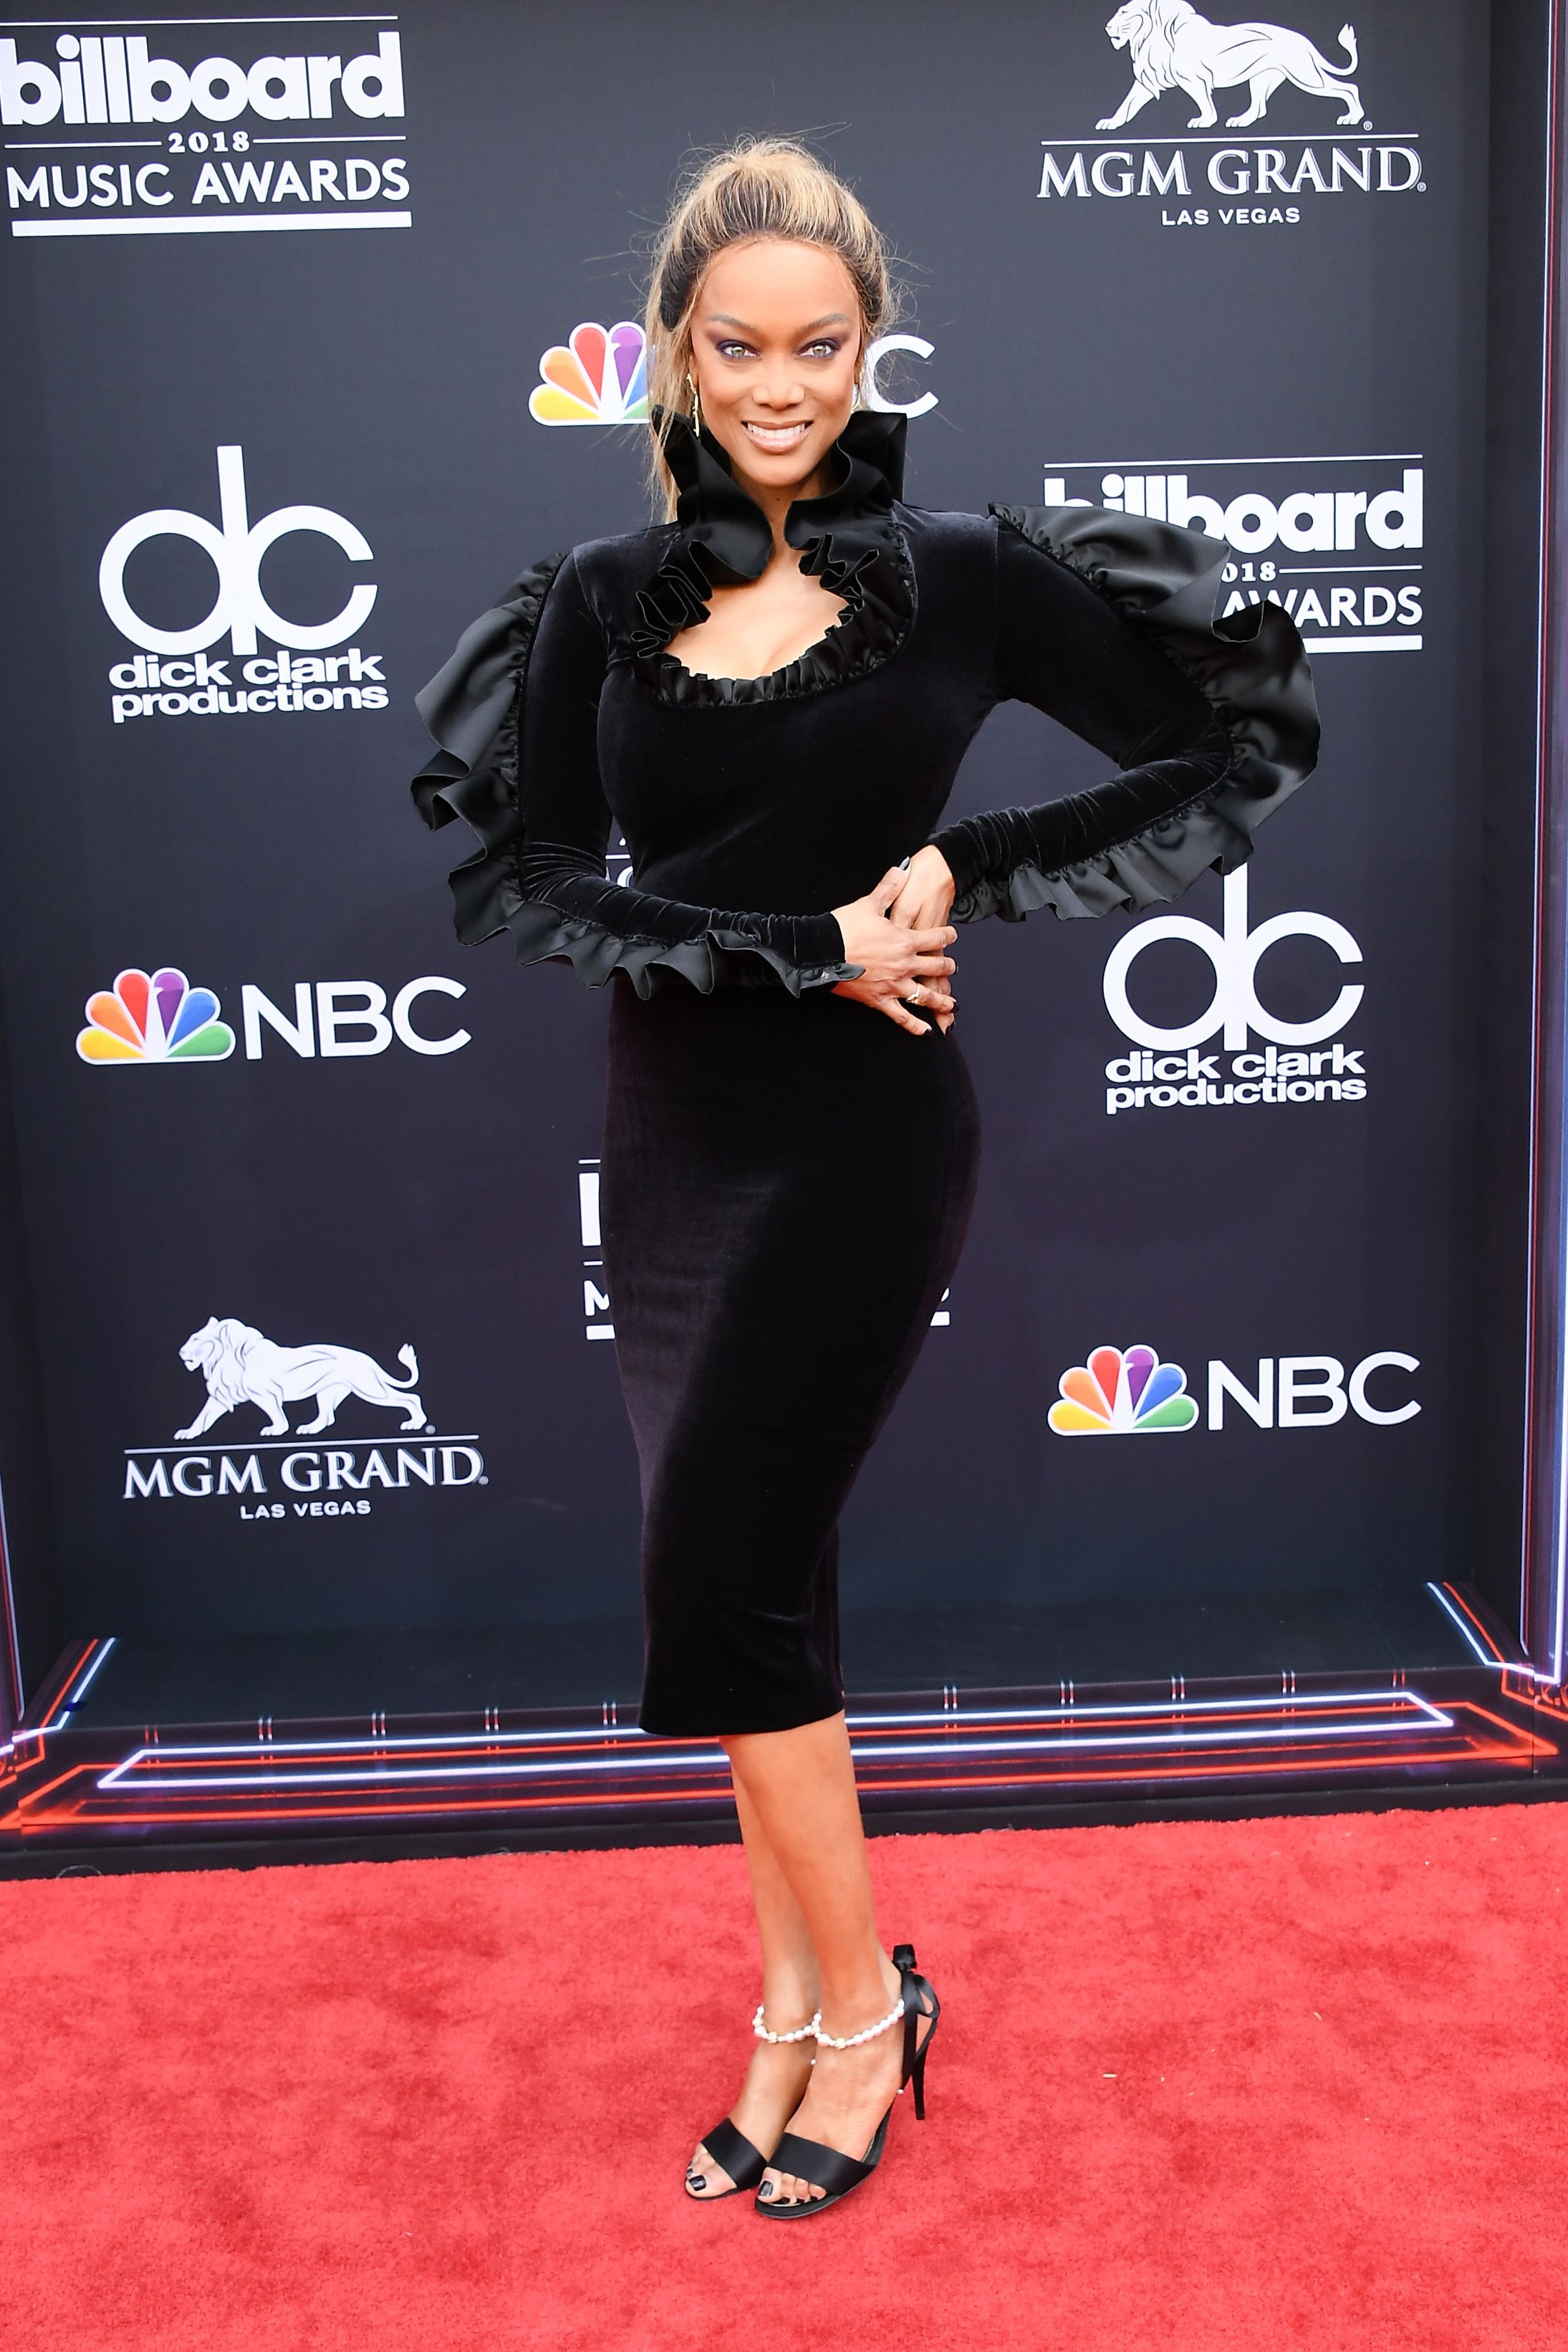 Justin Hartley Christina Aguilera >> Celebrities at the Billboard Music Awards - Best Dressed at the 2018 Billboard Awards